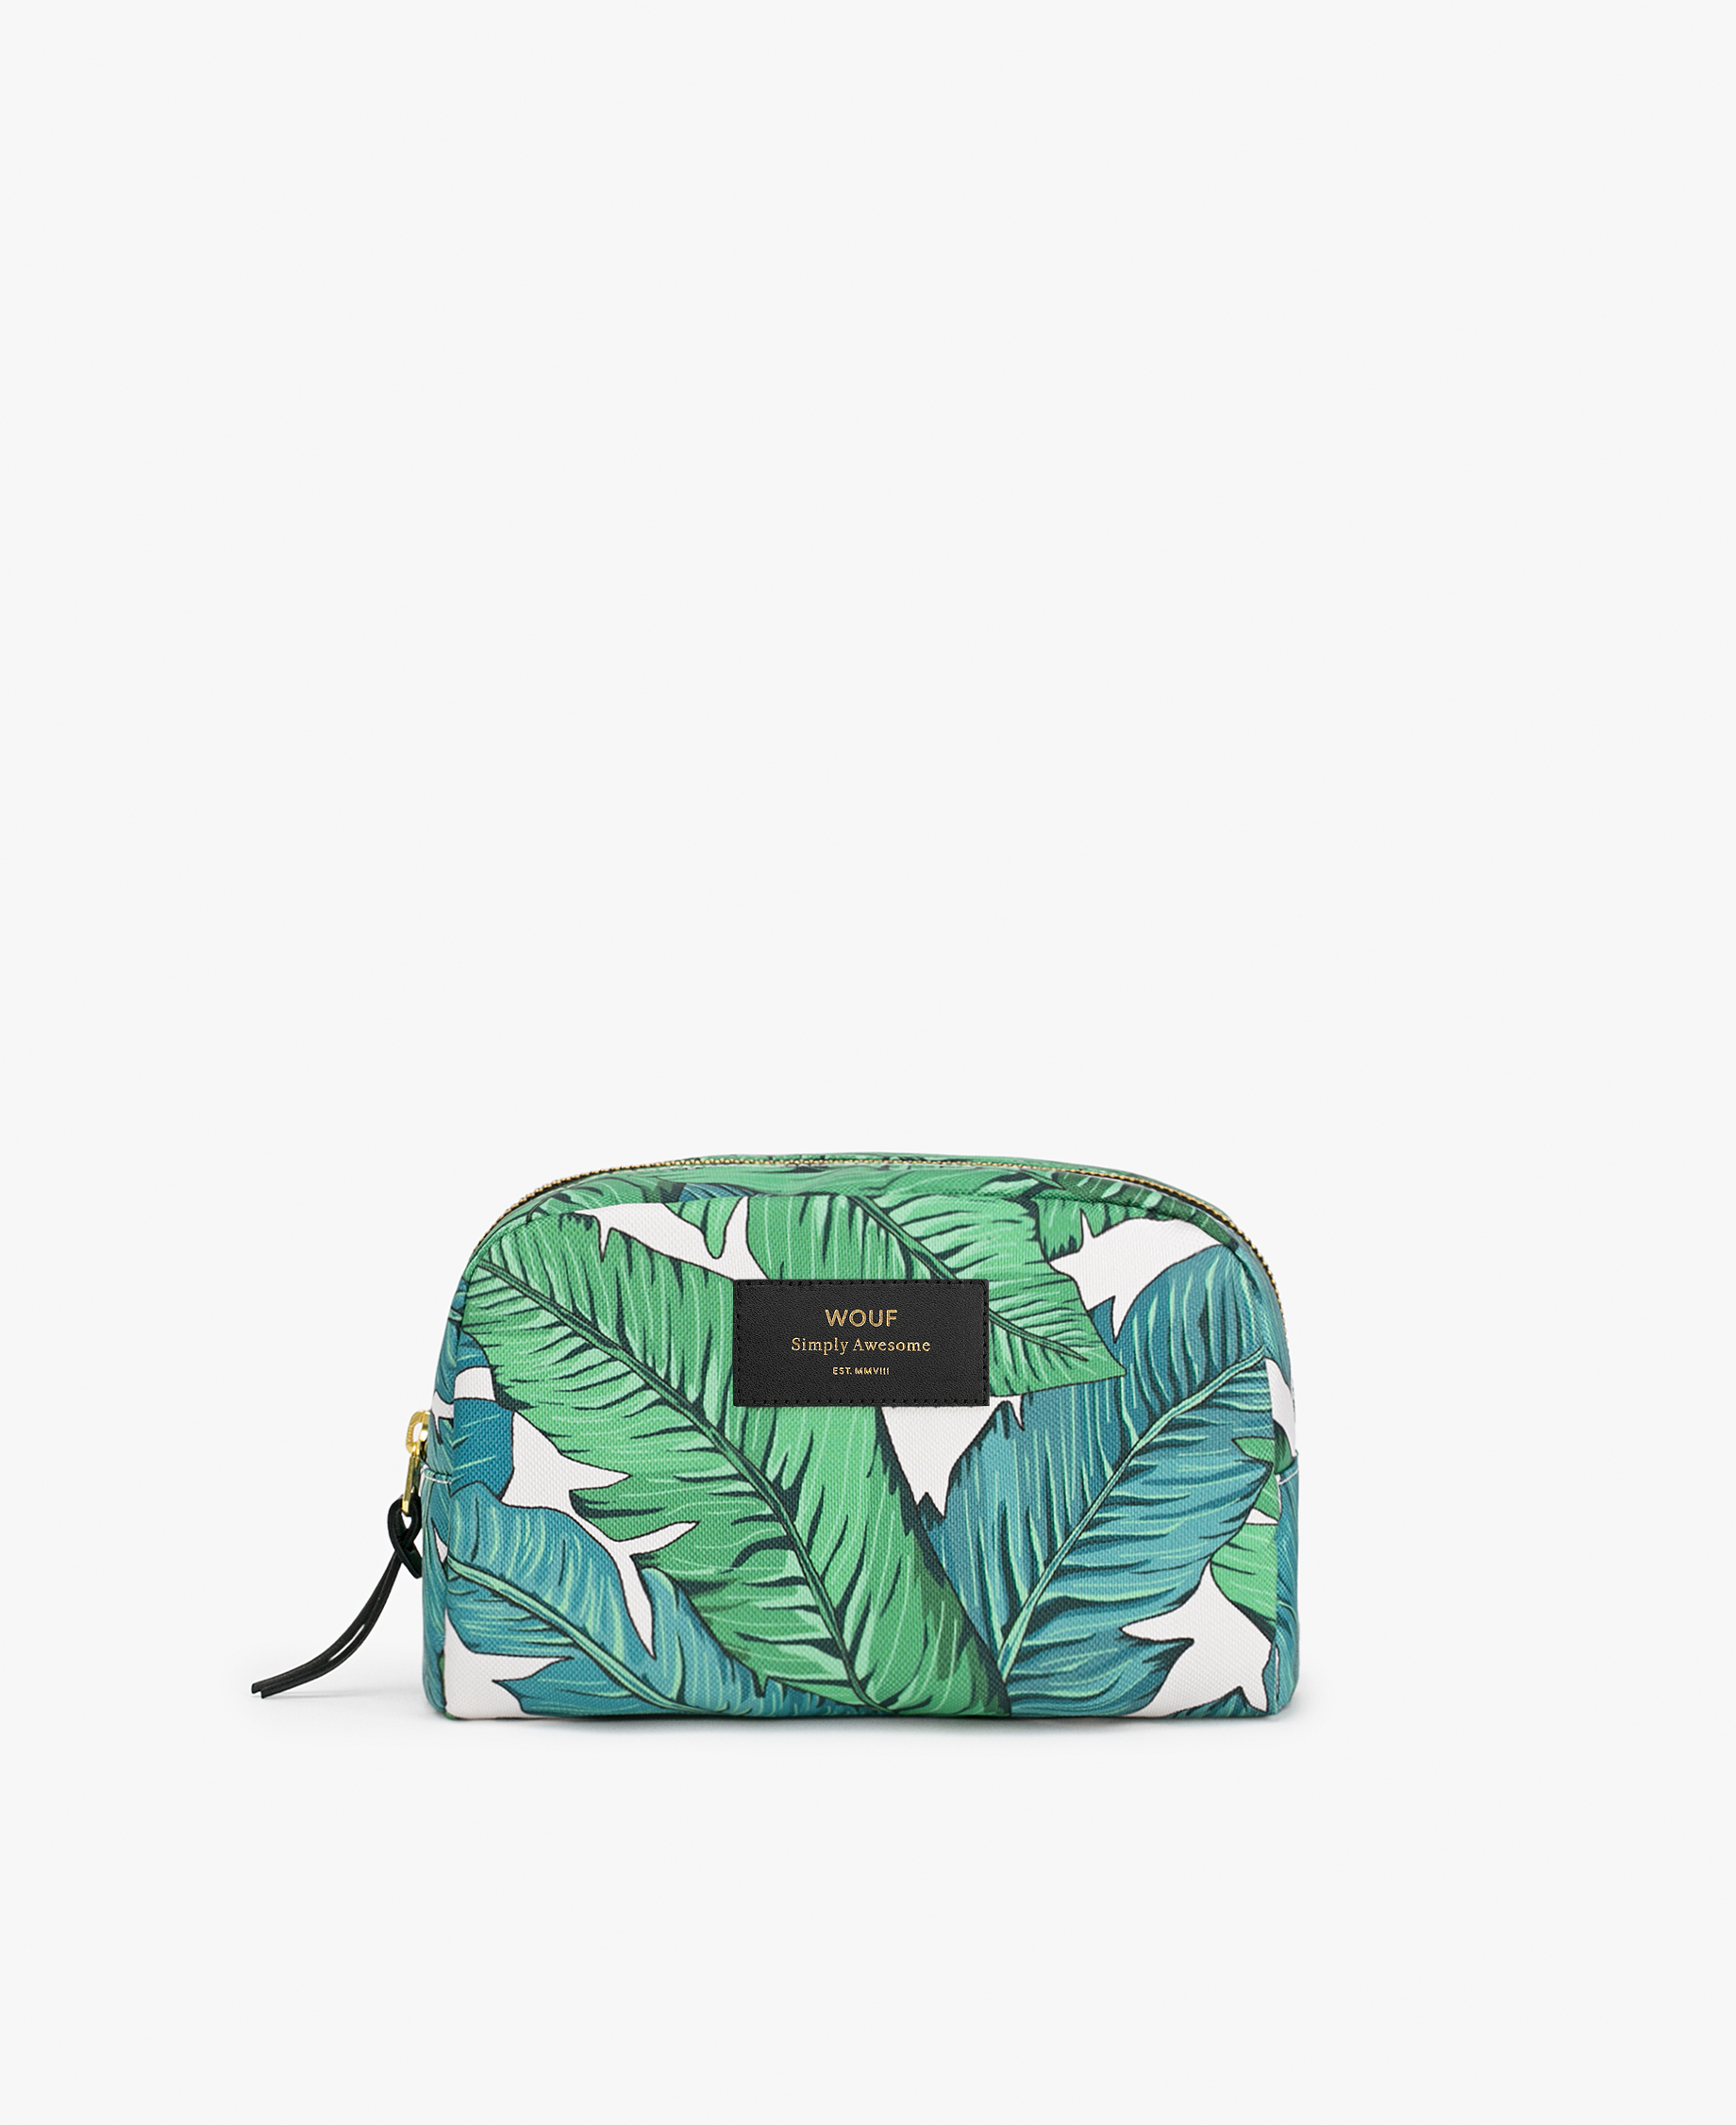 woman's toiletry bag in white with green leaves and golden zipper